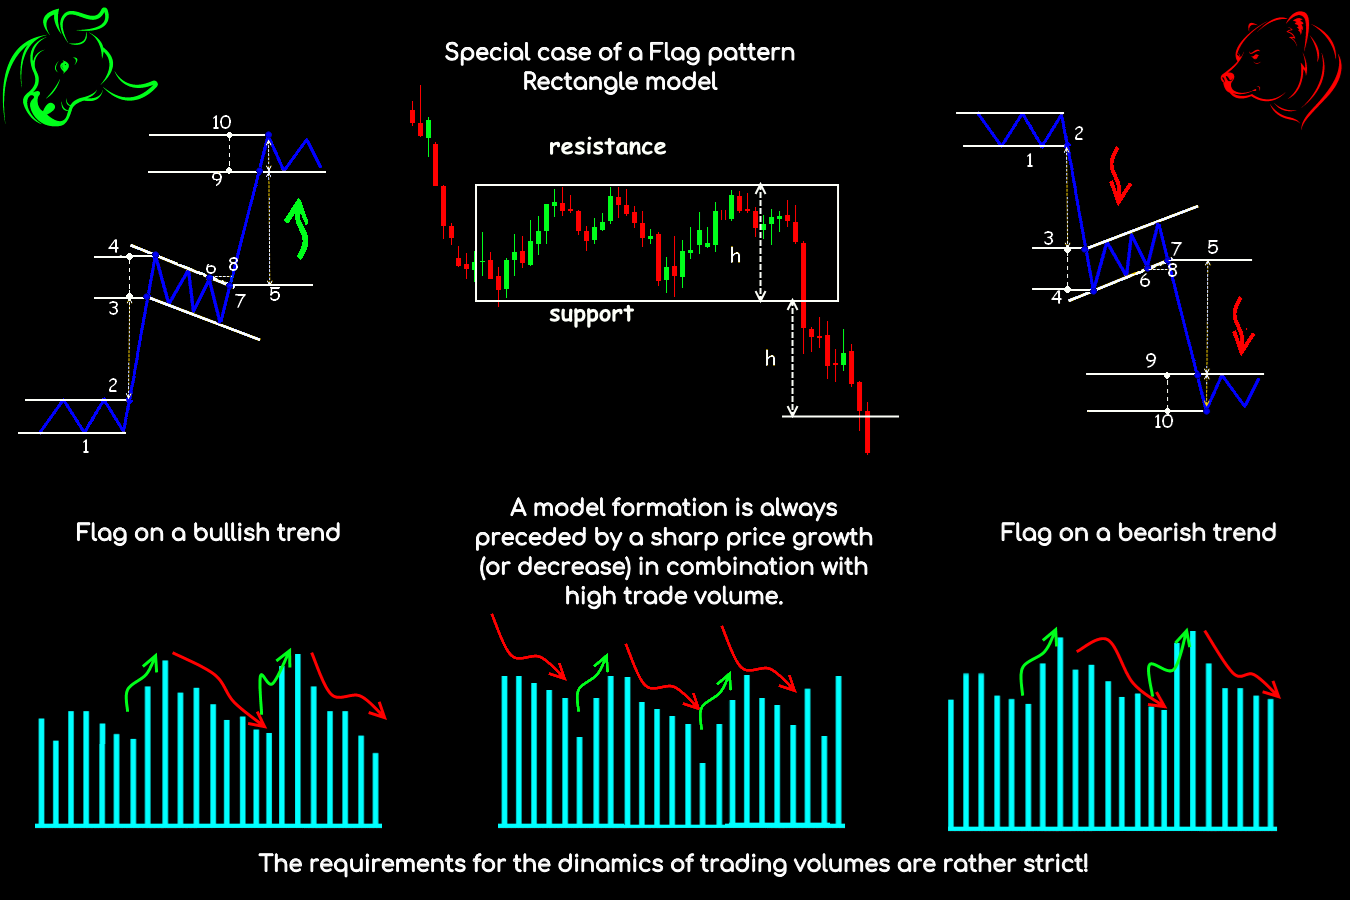 Parameters and general view of the Flag pattern